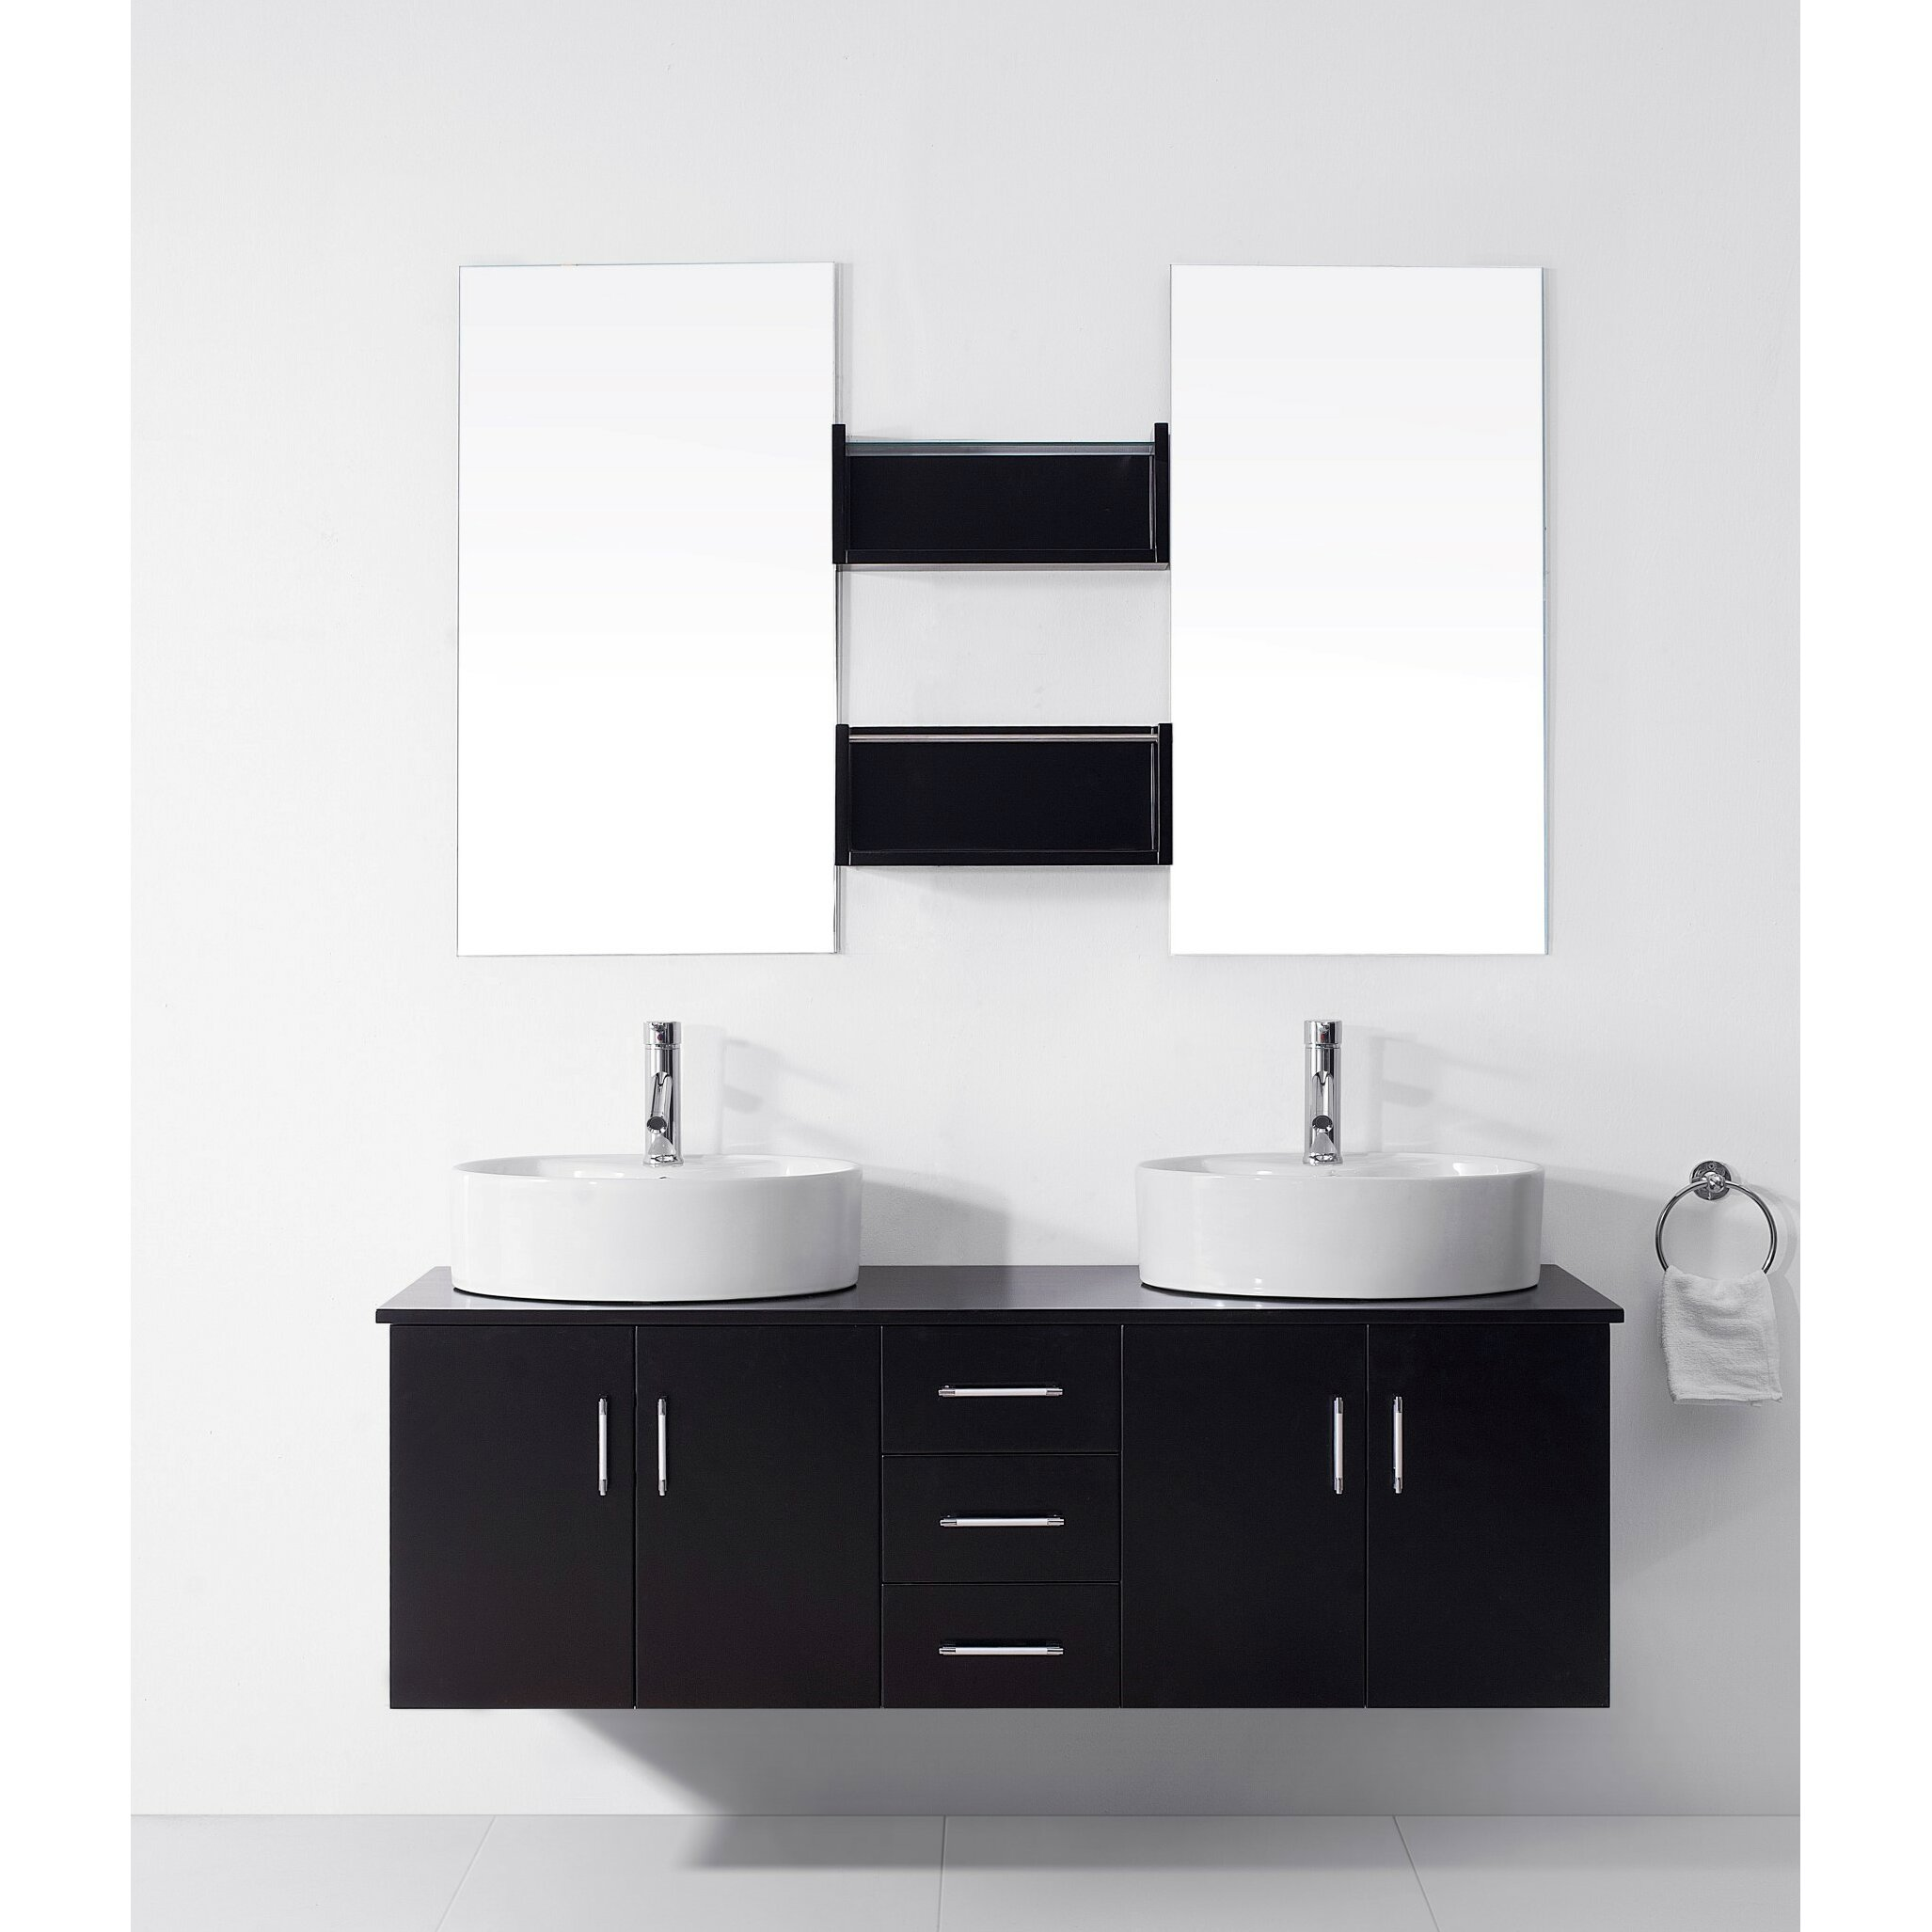 Custom Bathroom Vanities Nj bathroom vanities nj bathroom vanities nj main nest home and